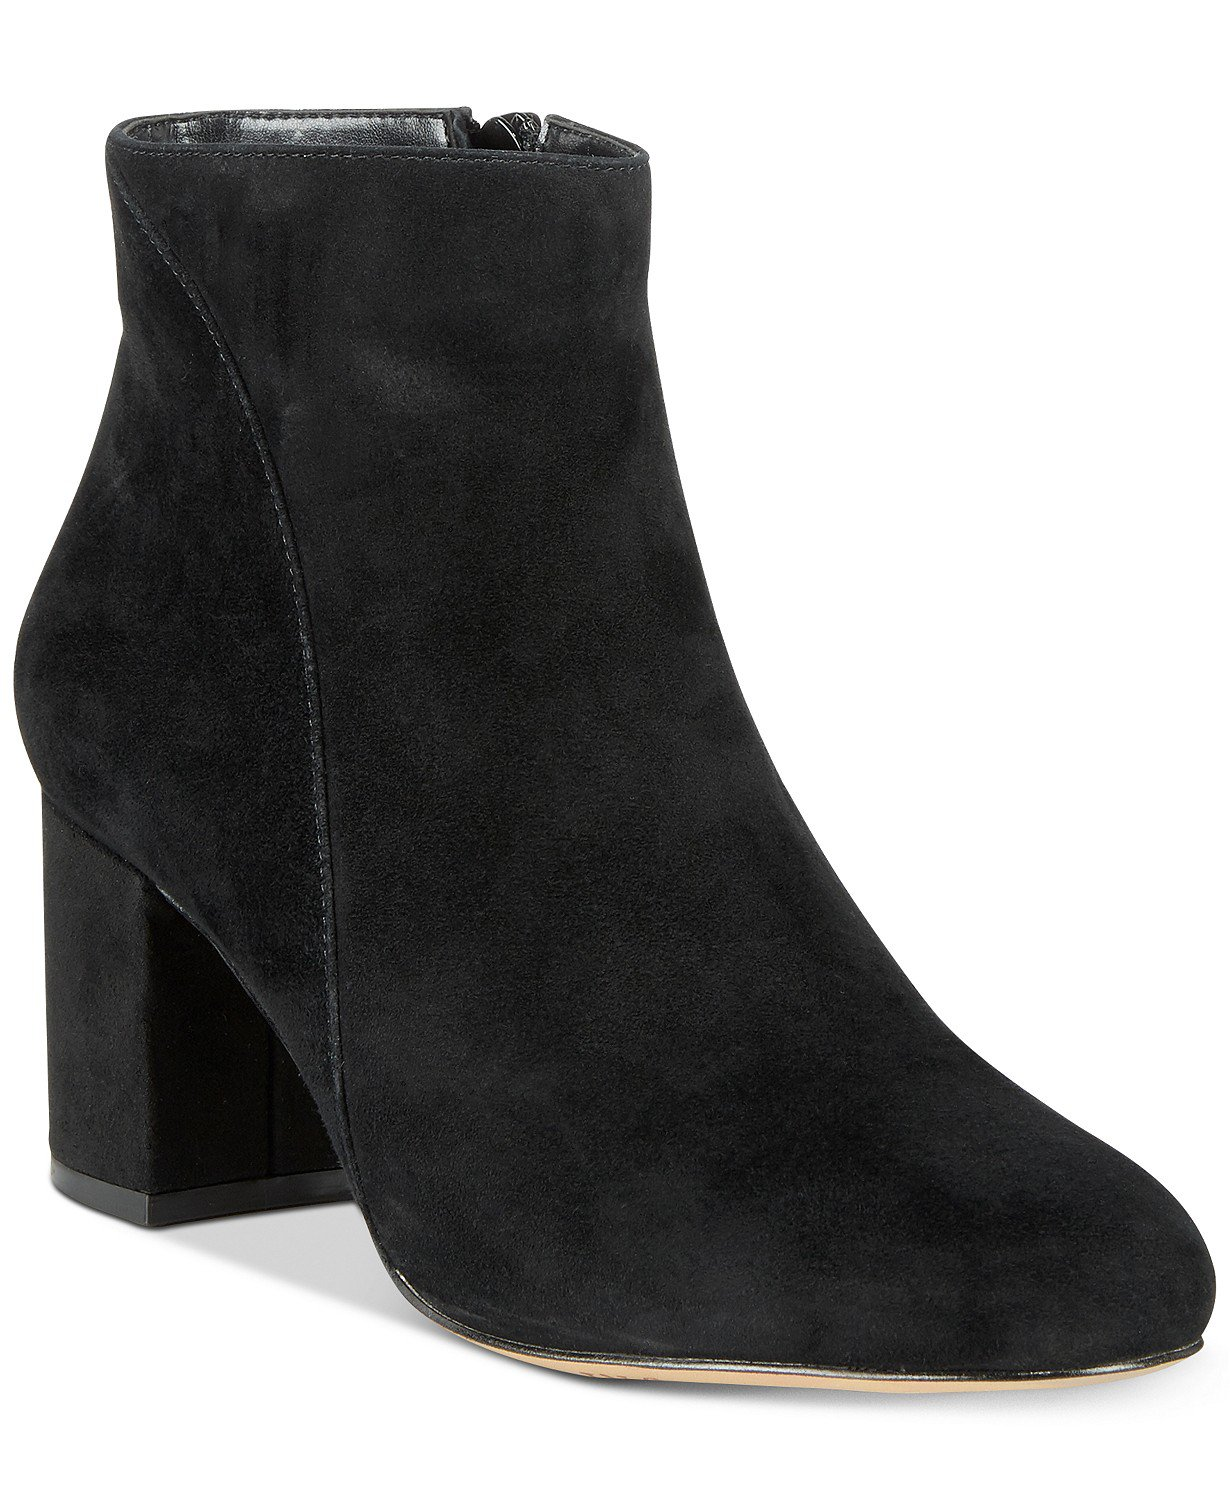 INC International Concepts INC Floriann Block-Heel Ankle Booties, Created for Macy's & Reviews - Boots - Shoes - Macy's